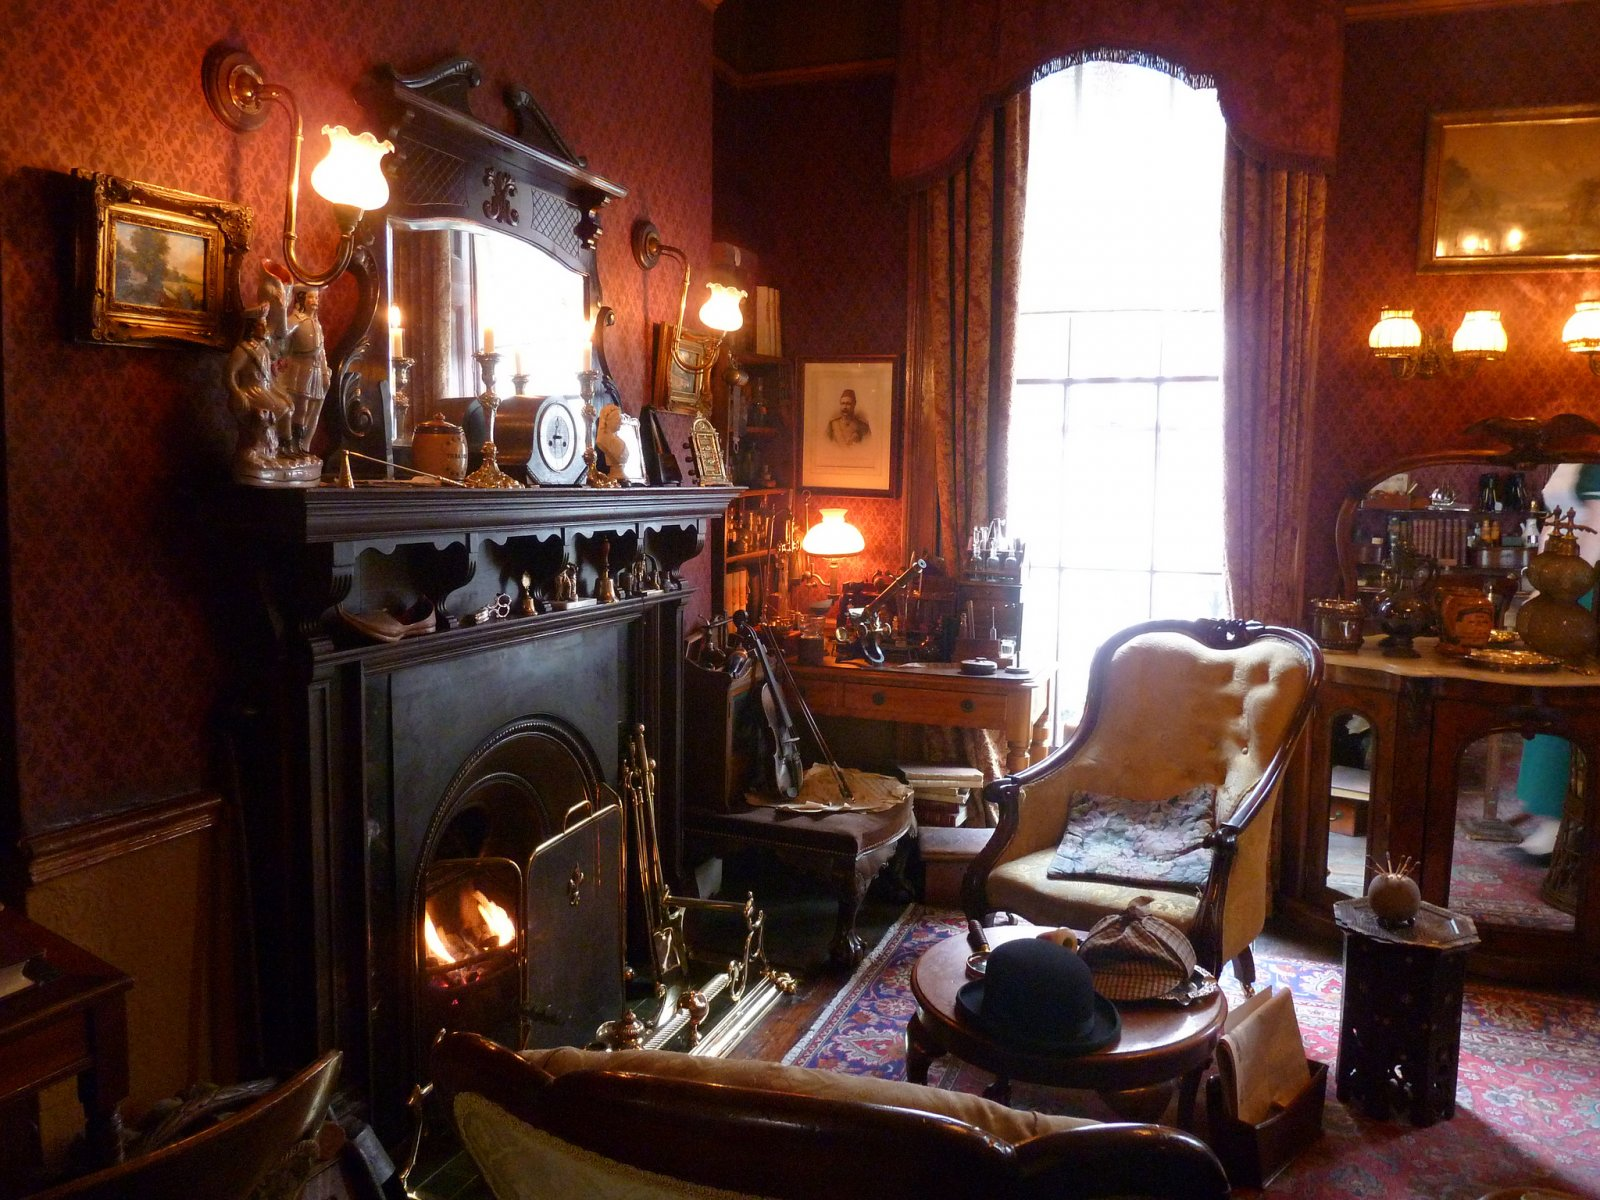 How to pay a visit to Sherlock Holmes in London